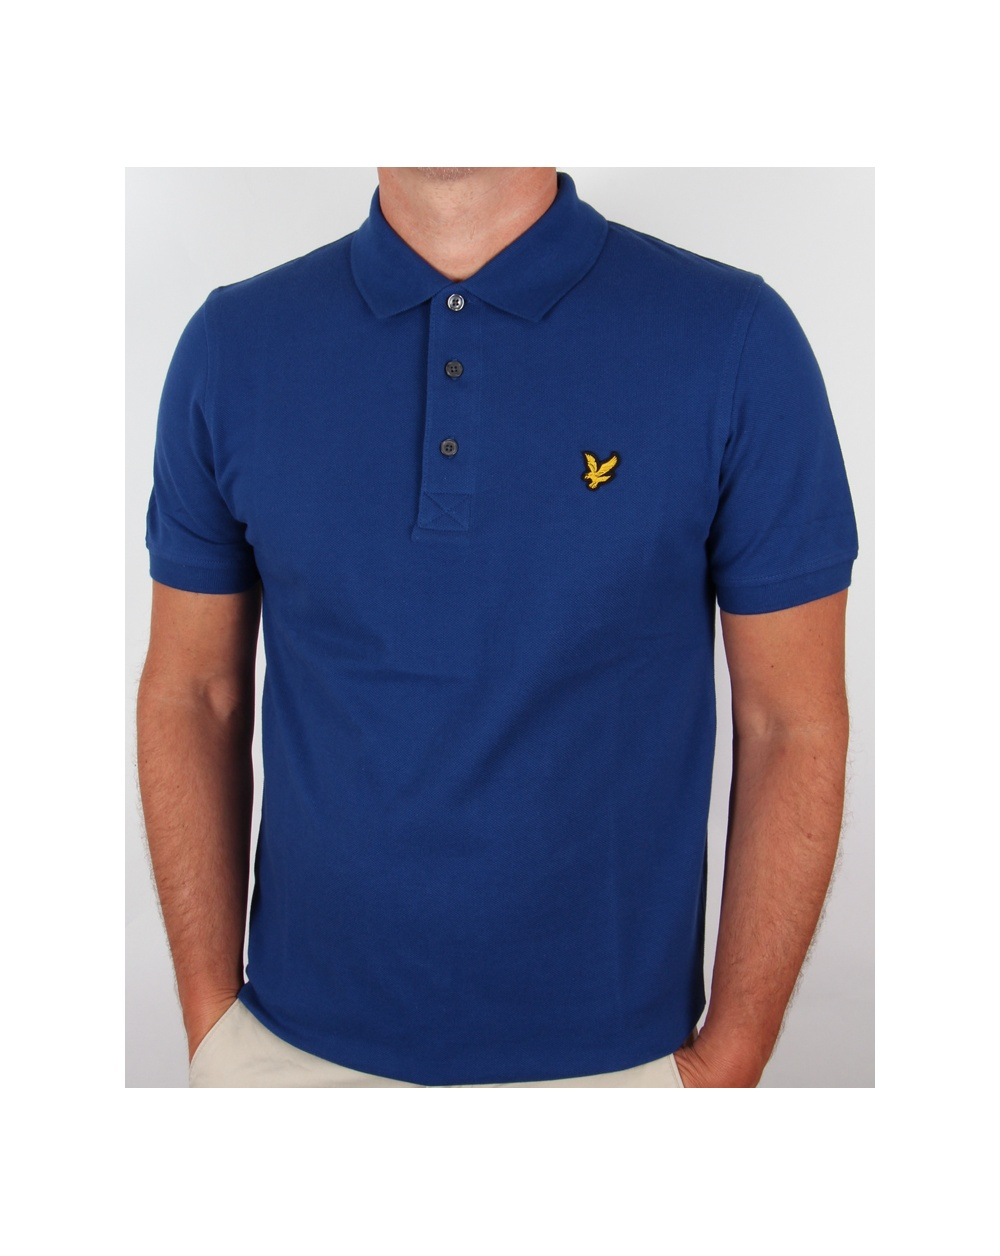 lyle and scott polo shirt s s saltire blue lyle scott polo shirt. Black Bedroom Furniture Sets. Home Design Ideas